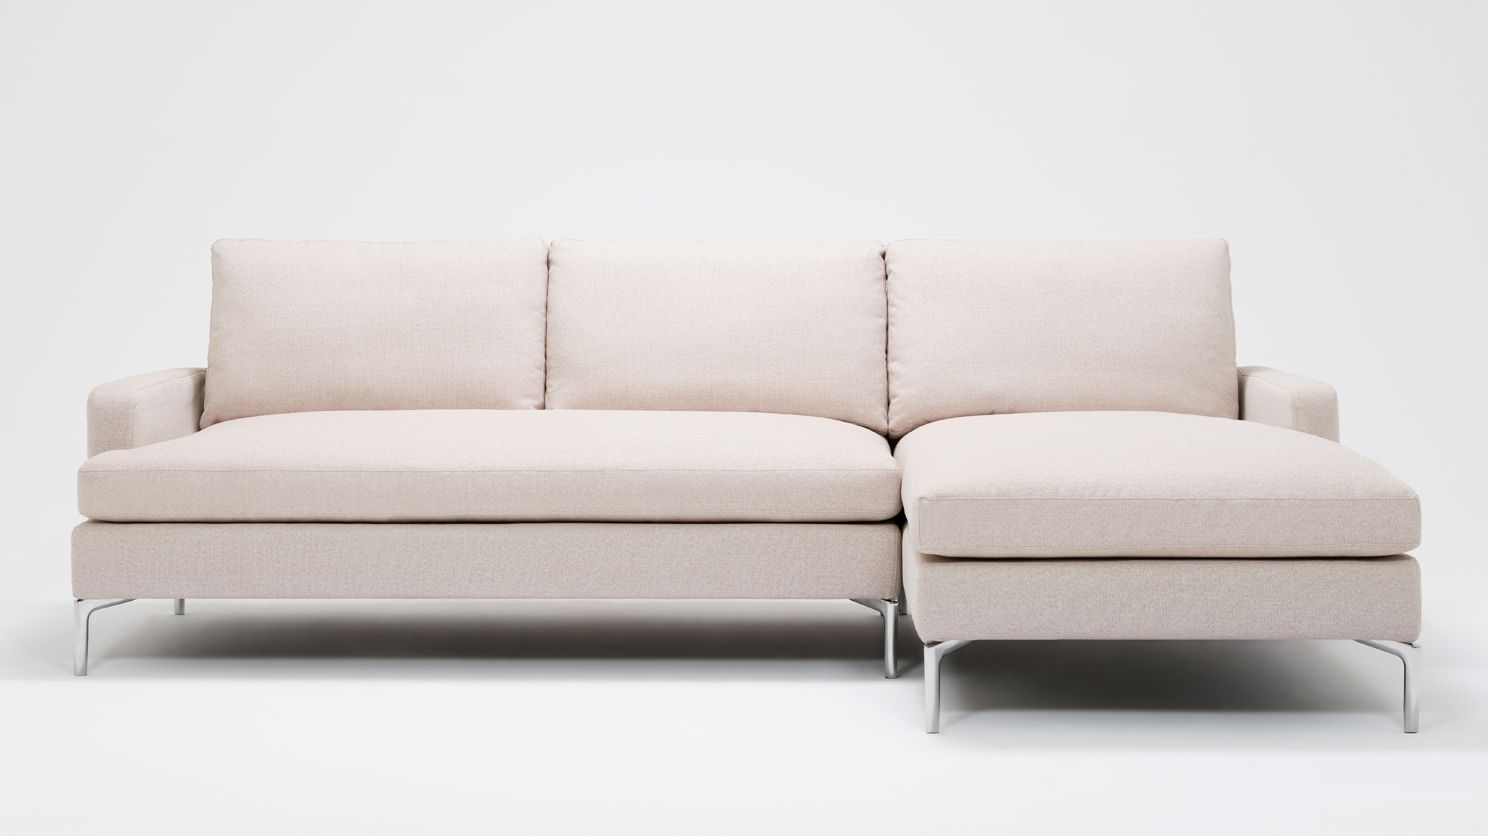 Eve Grand 2 Piece Sectional Sofa With Chaise Sectional Sofa With Chaise 2 Piece Sectional Sofa Sectional Sofa